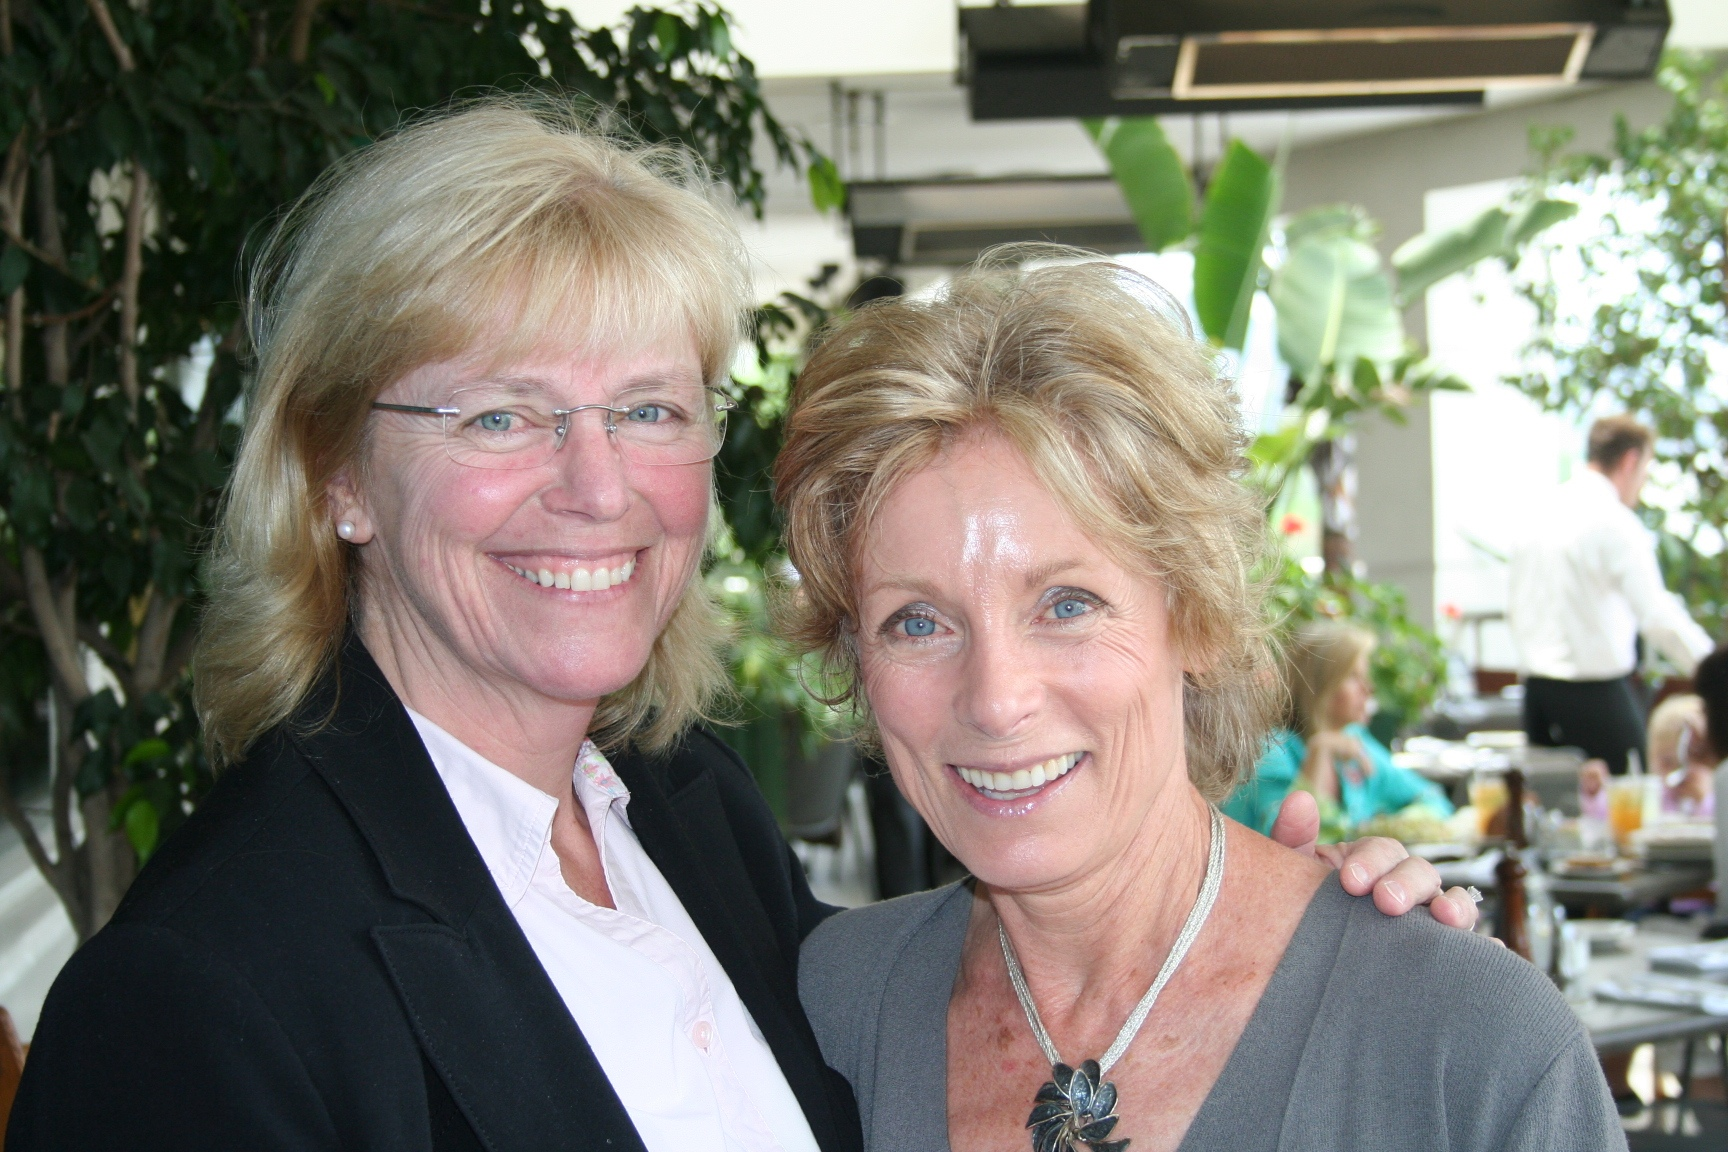 Discussion on this topic: Maria Zanoli, charmian-carr/